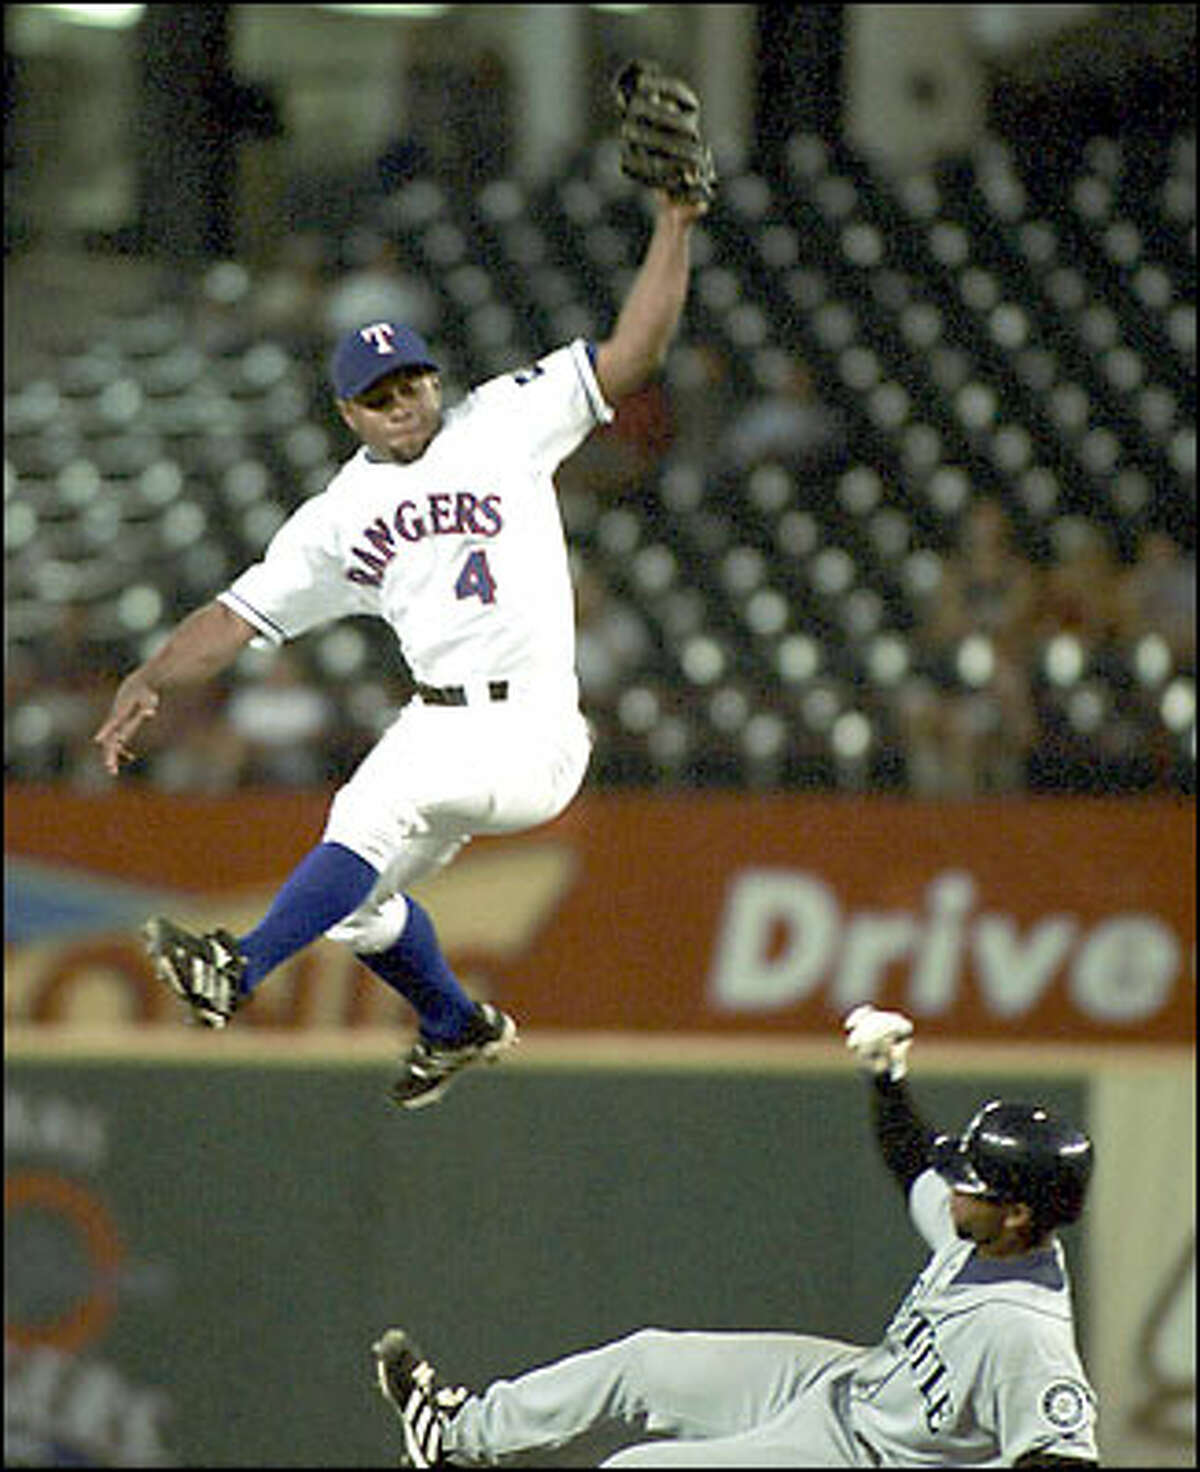 Desi Relaford steals second in the third inning as Rangers second baseman Donnie Sadler leaps for the throw. Relaford scored on John Olerud's double.